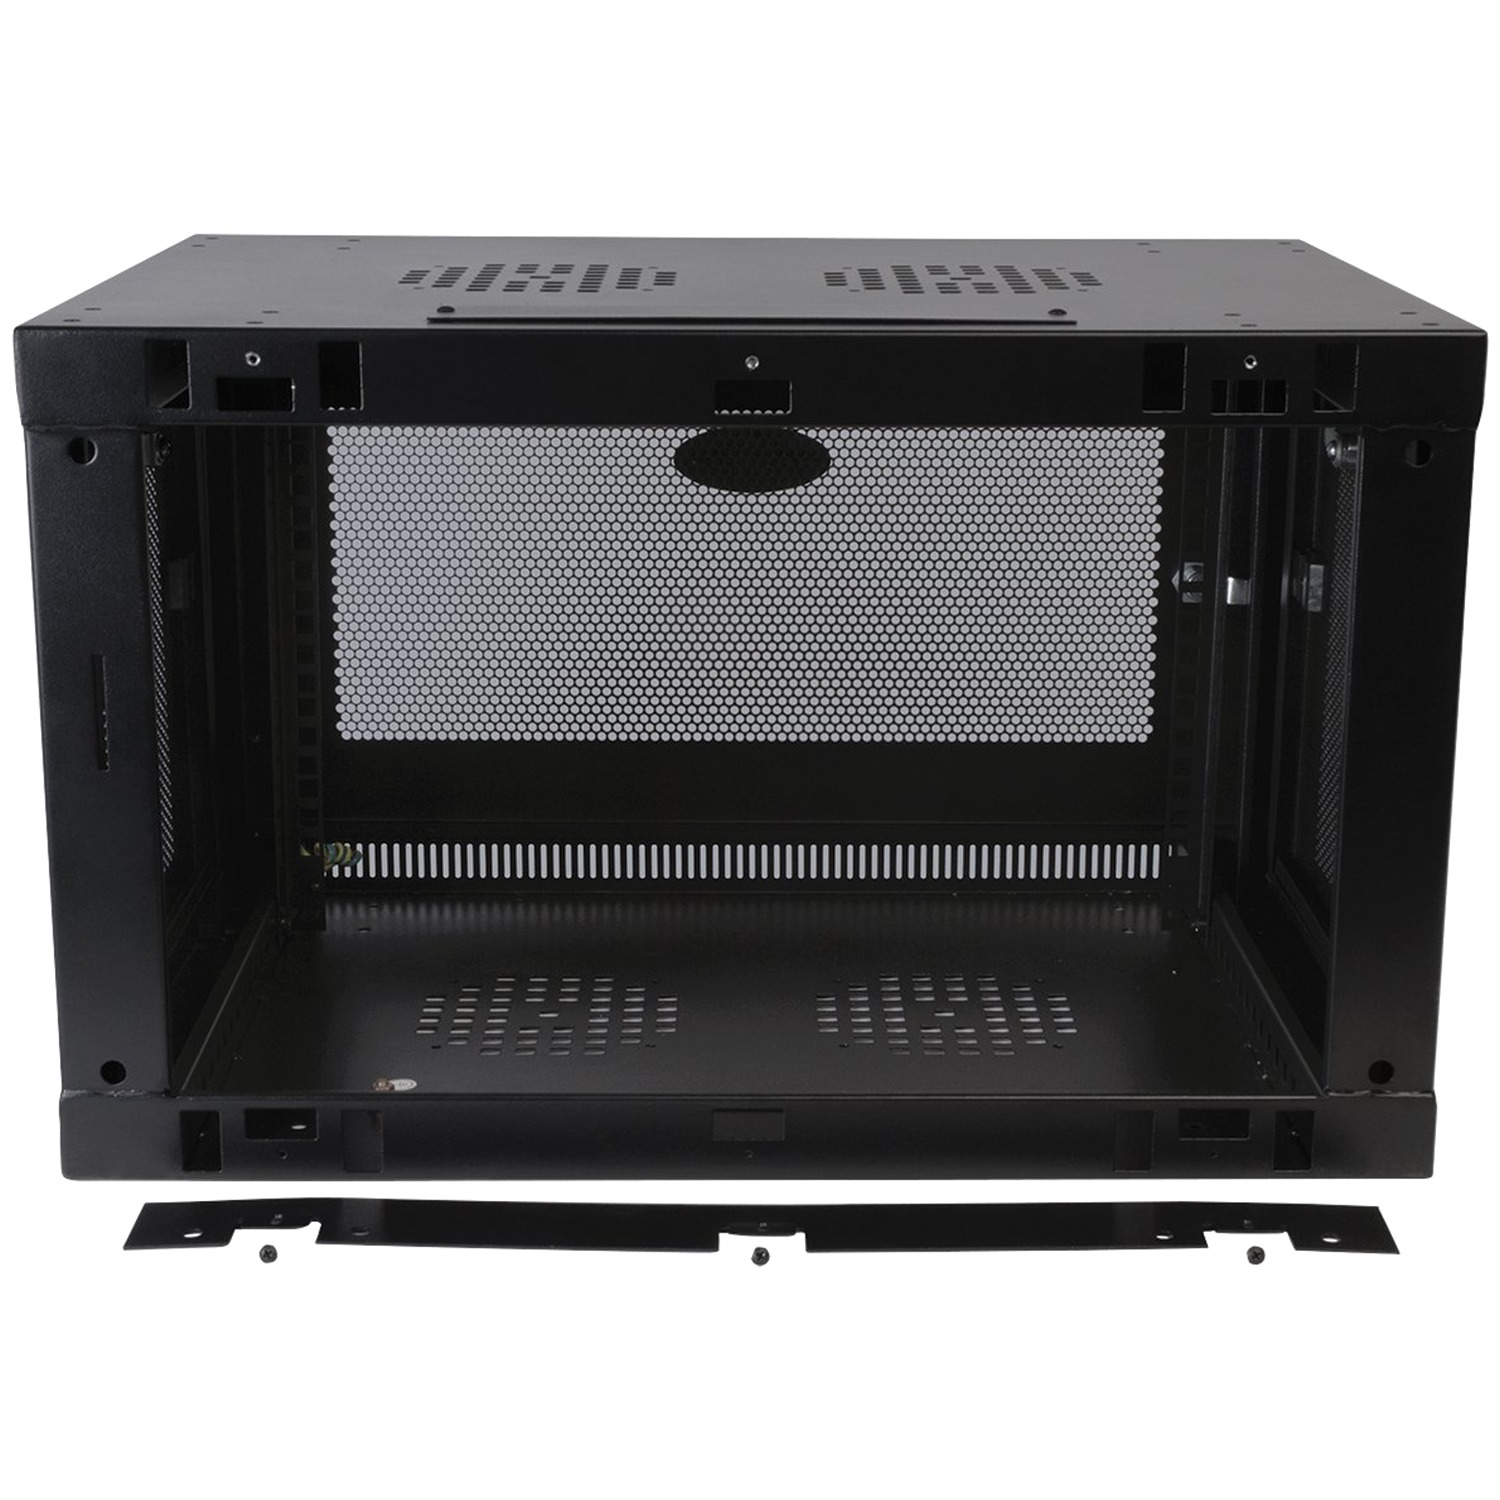 Tripp Lite SRW6U-6U Wall Mount Rack Enclosure Cabinet